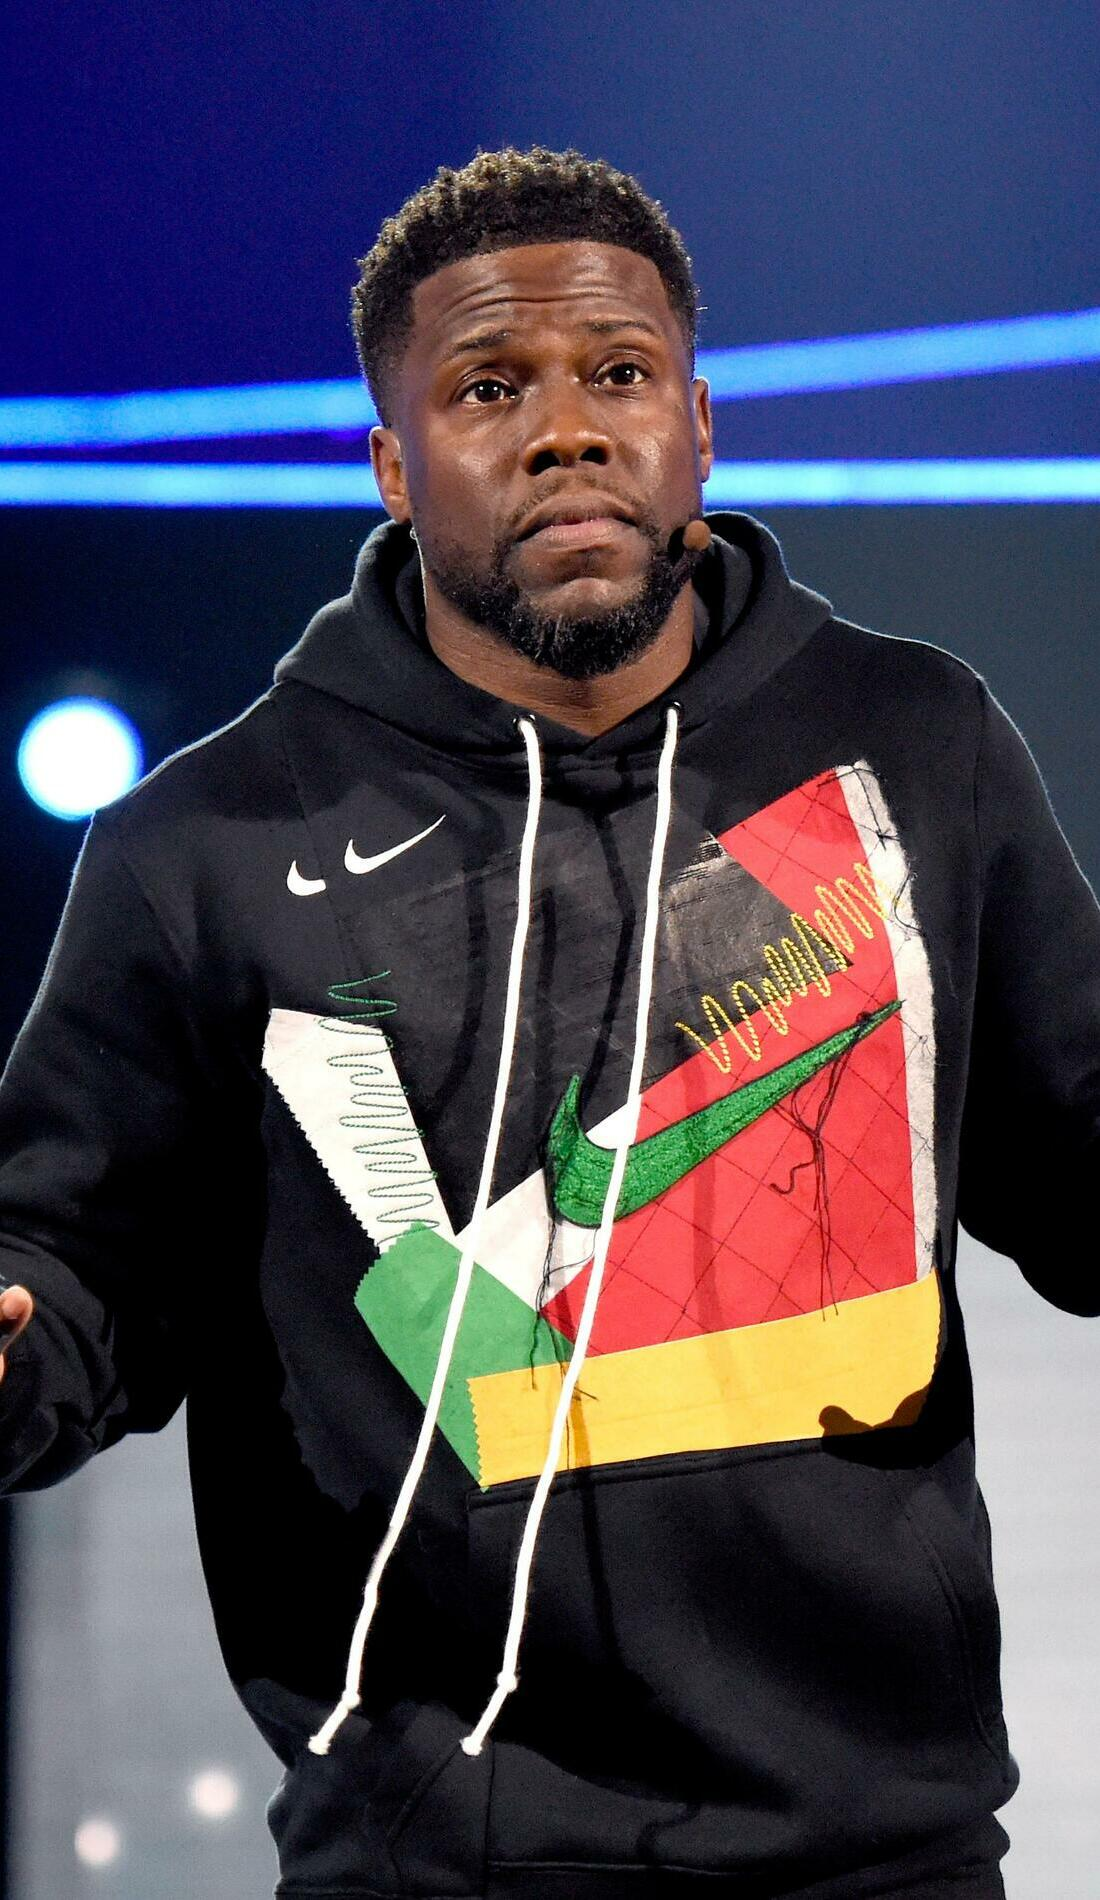 A Kevin Hart live event